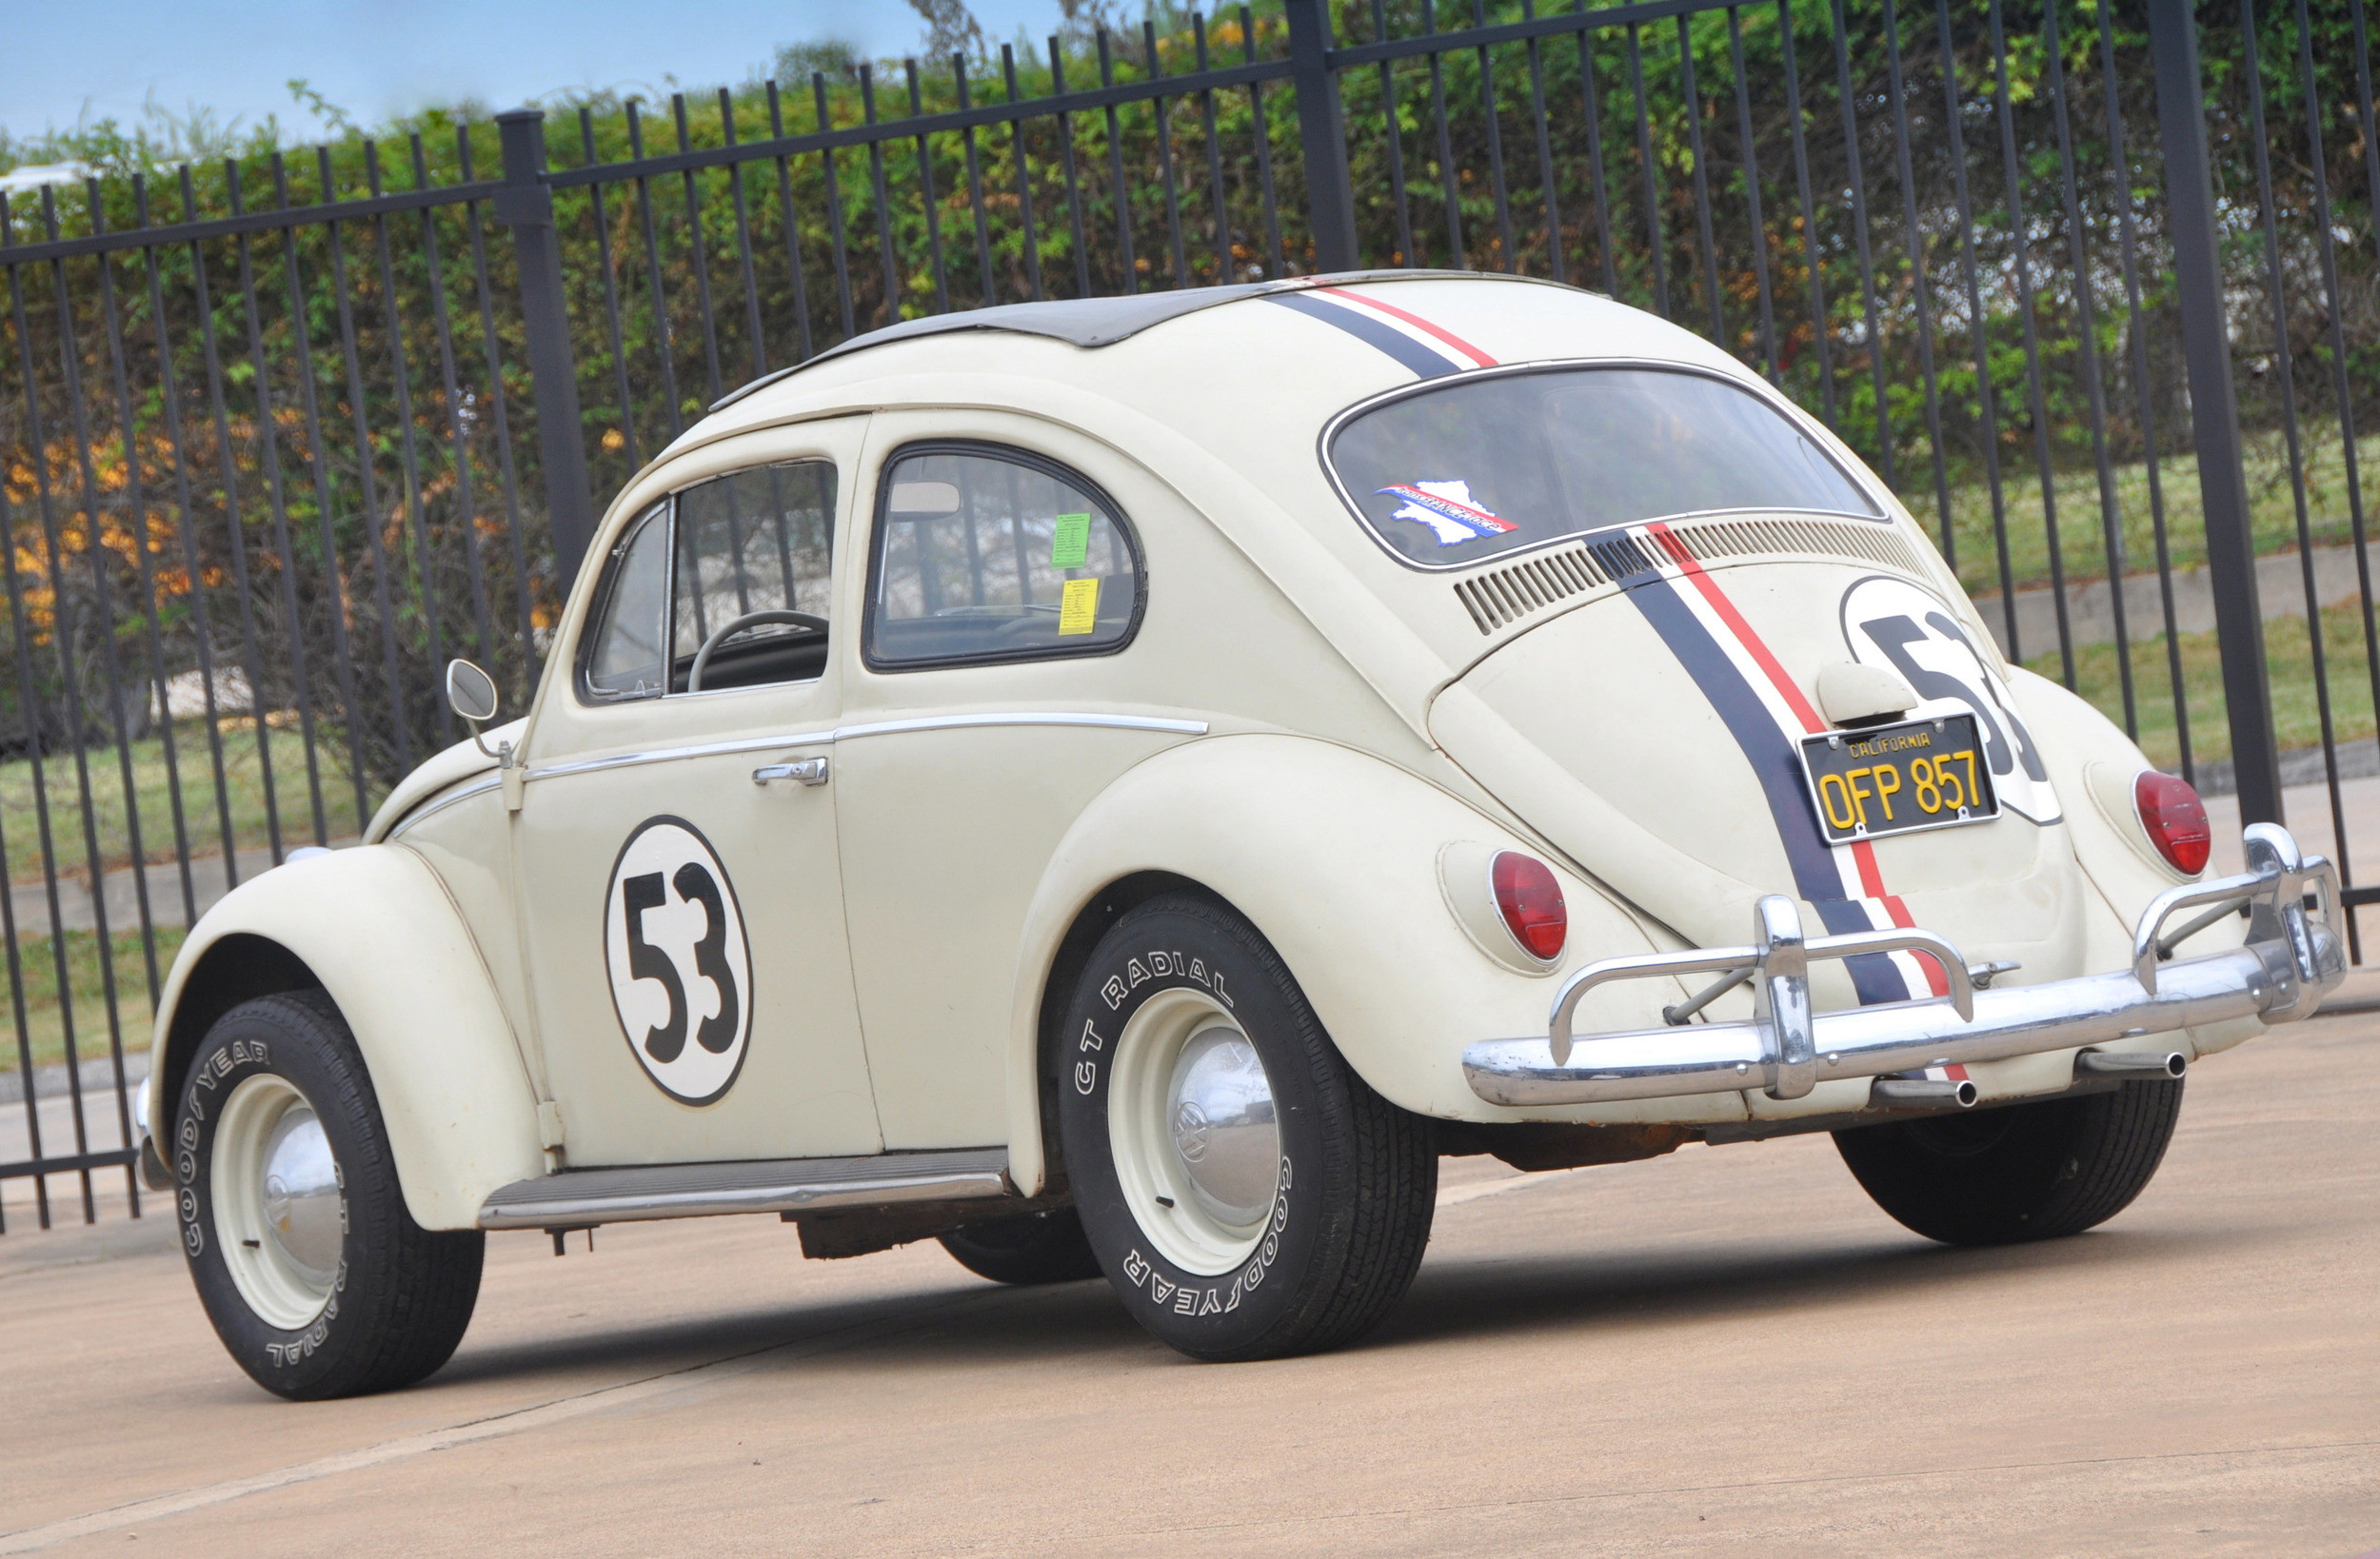 Res: 2500x1638, herbie the love bug 4